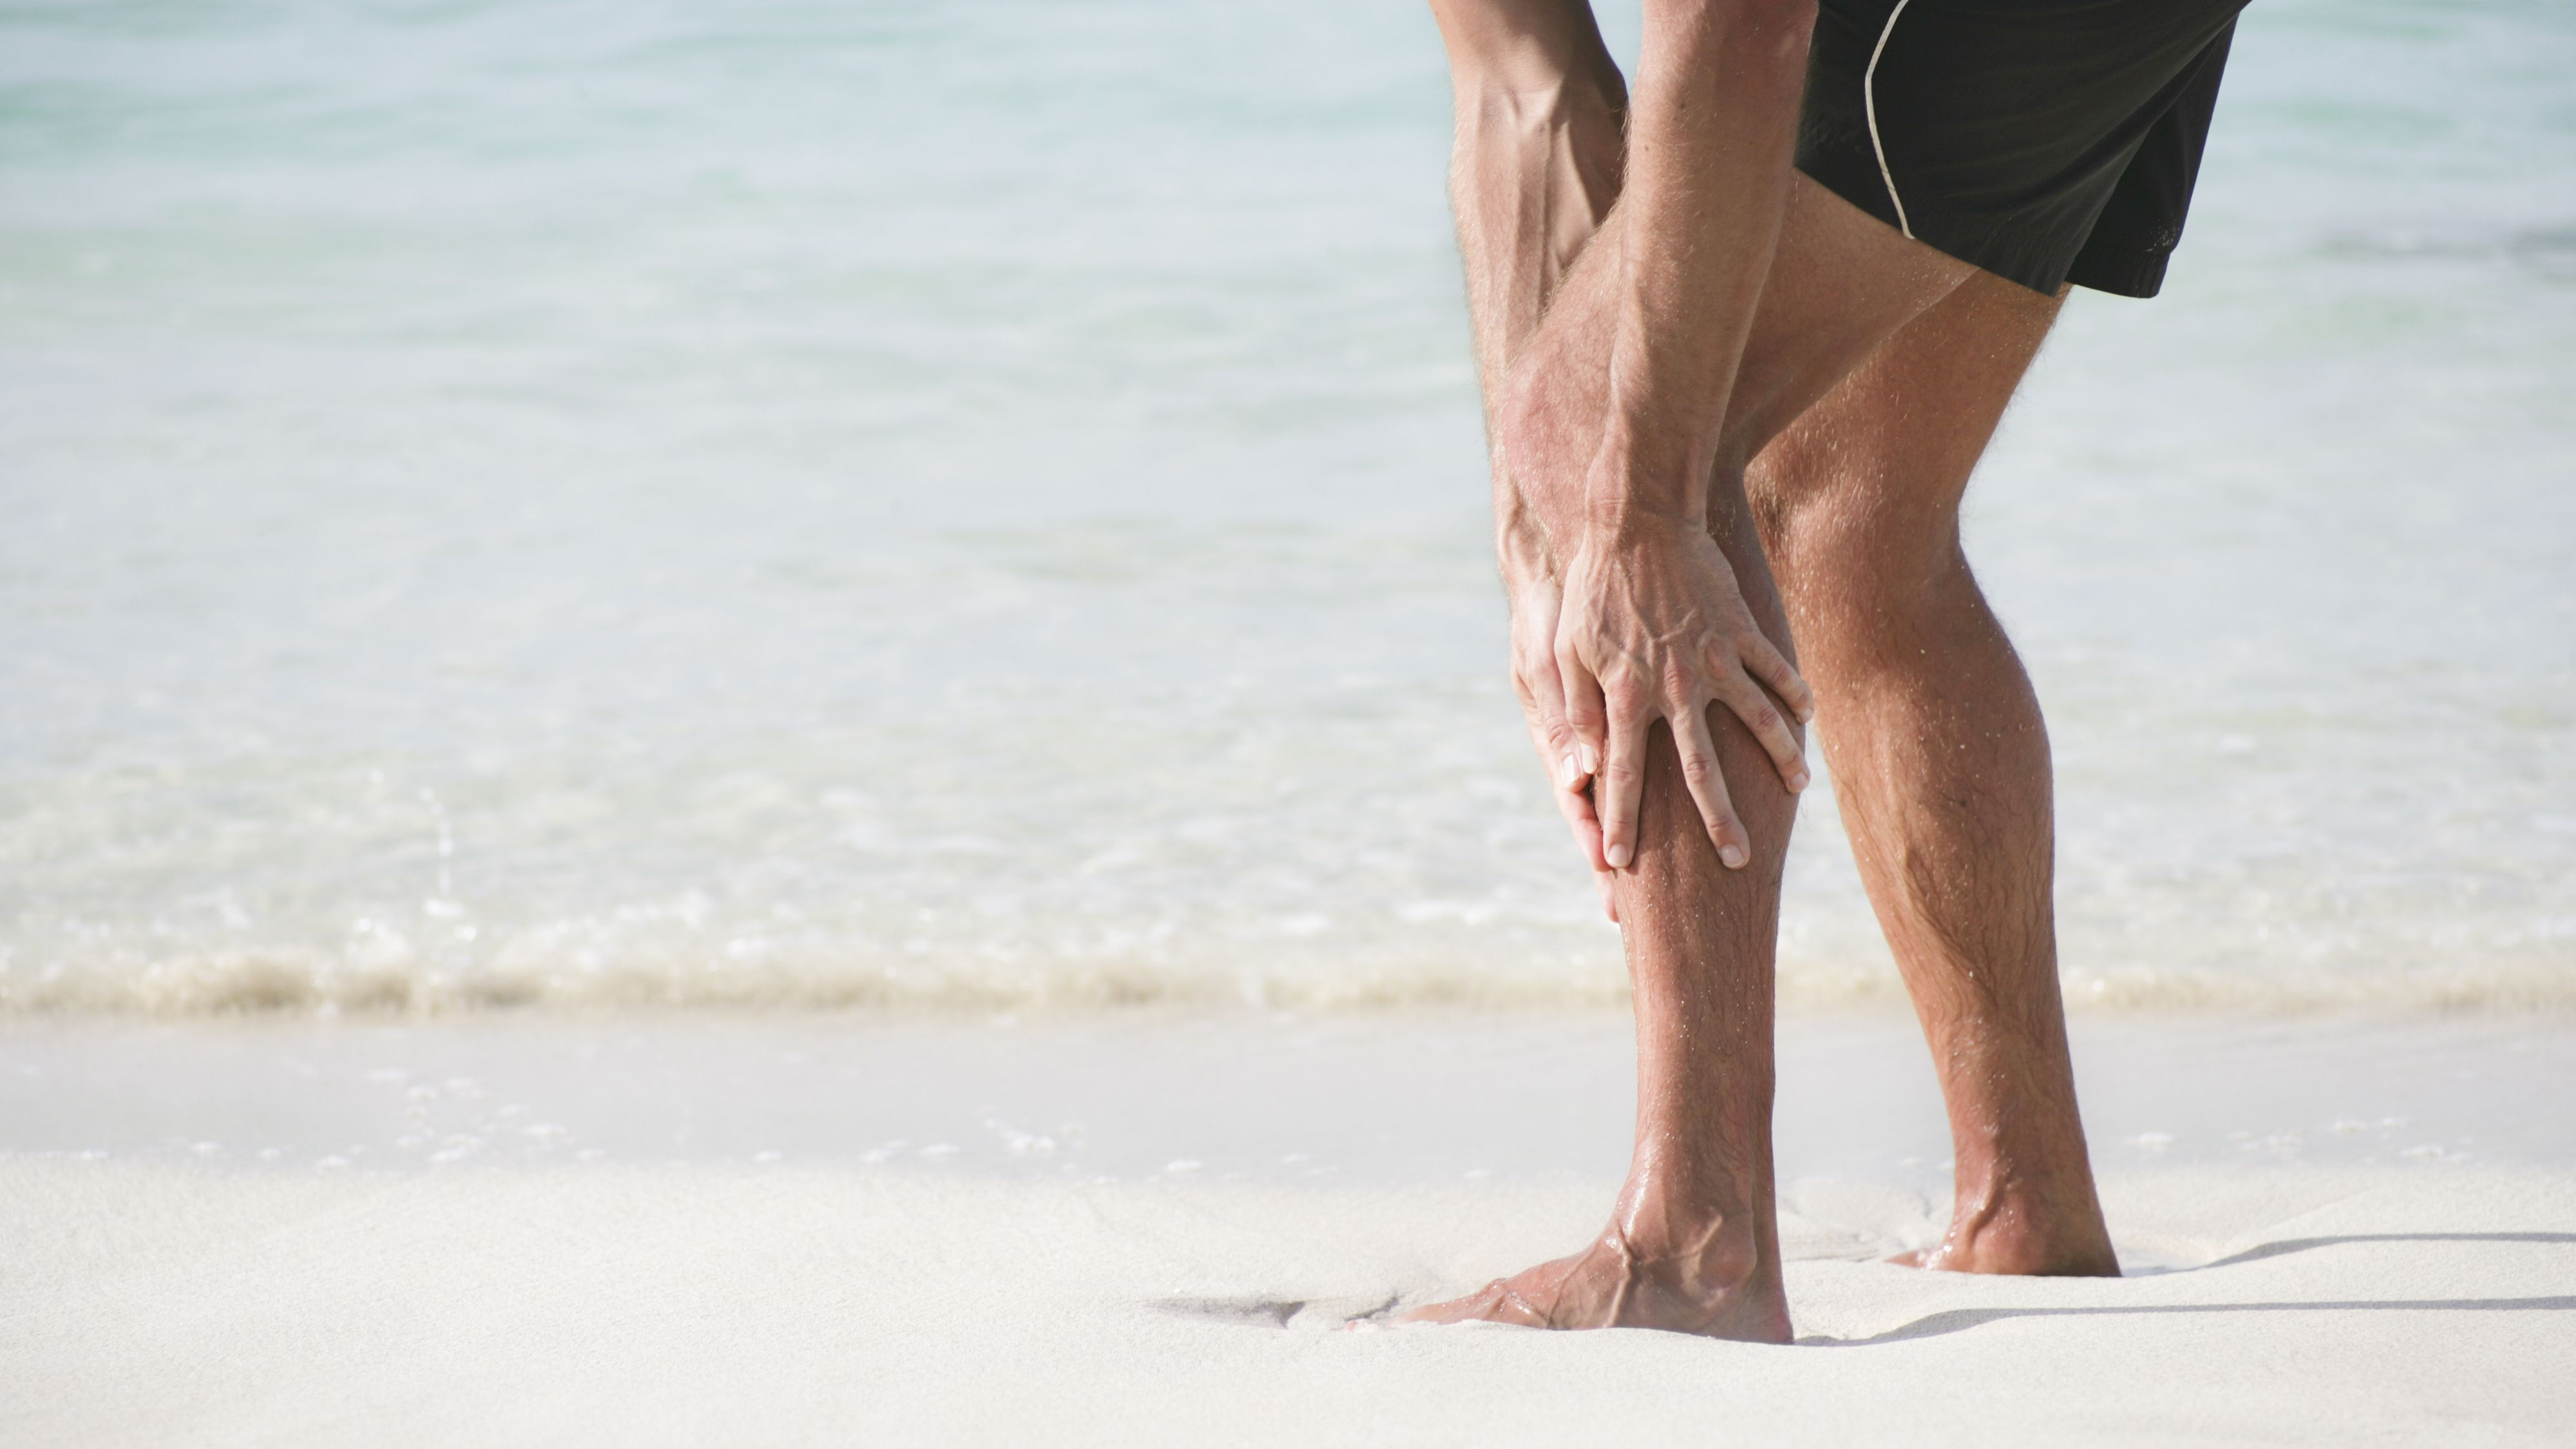 can vit d deficiency cause muscle twitching